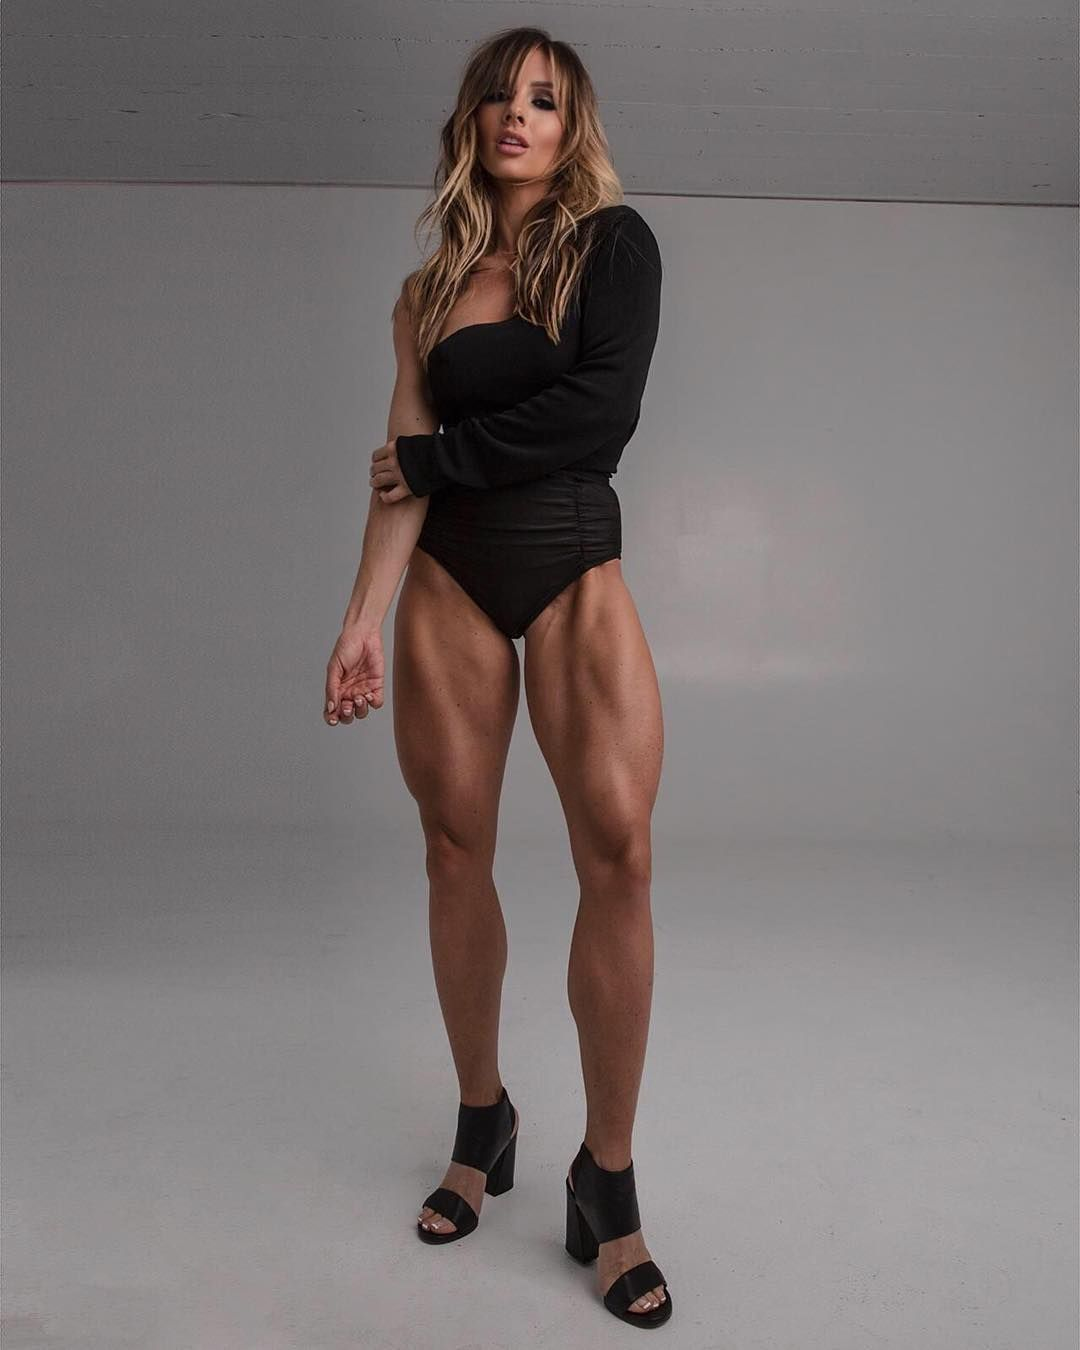 Instagram Paige Hathaway nude (46 foto and video), Sexy, Is a cute, Feet, butt 2006